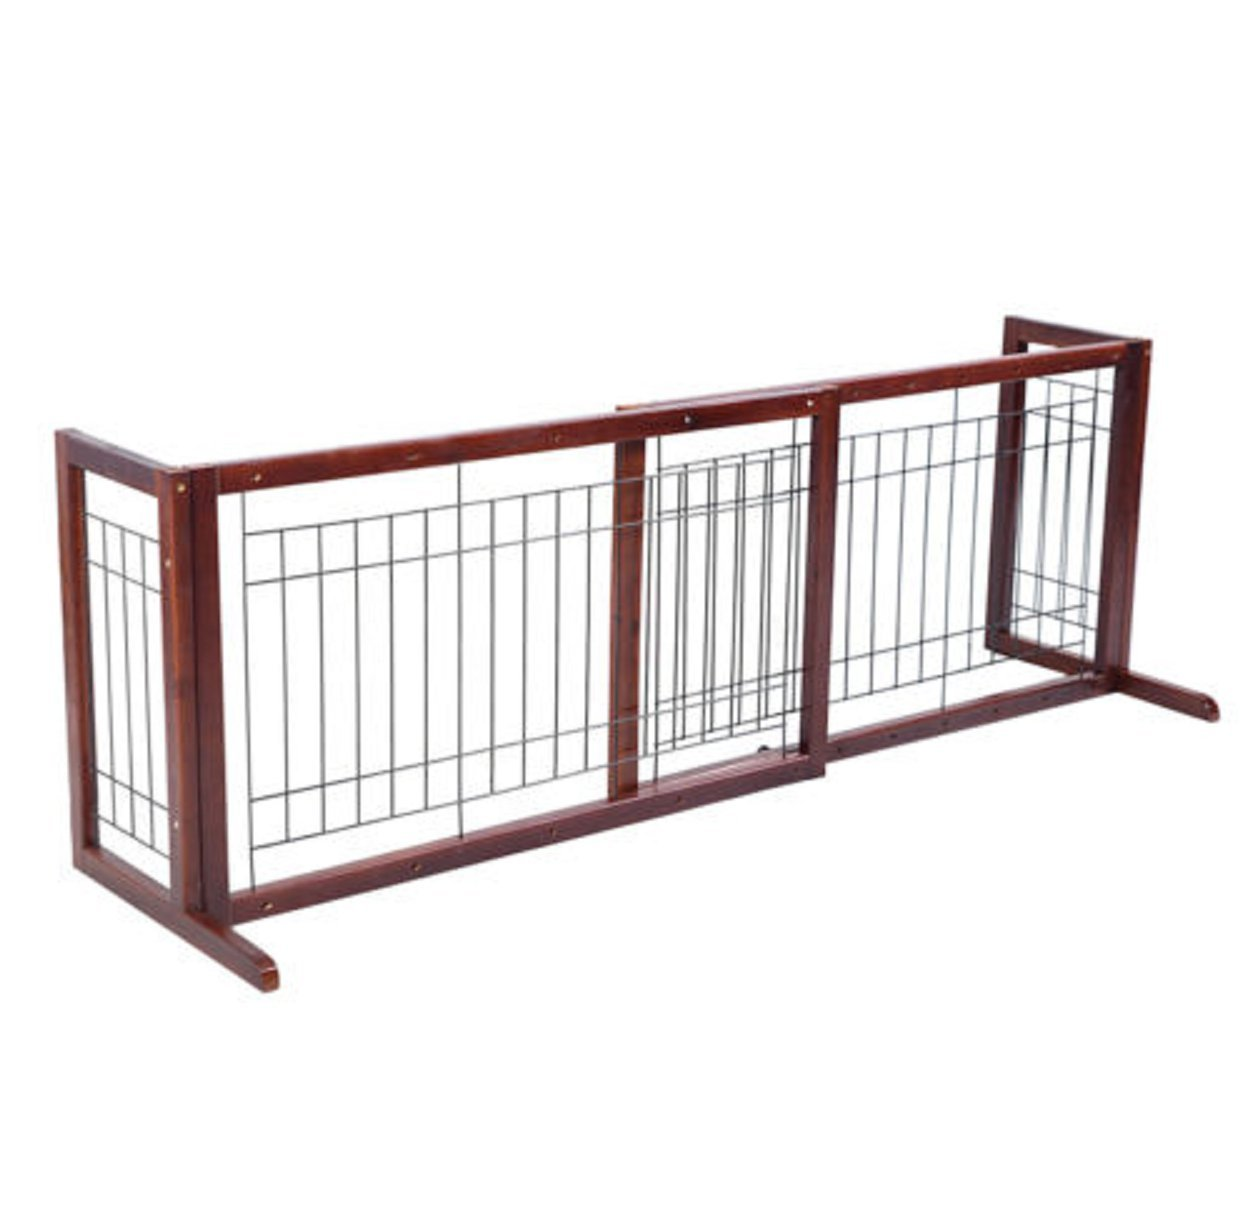 Gate Dog Wood Door Paw Wide Tall Adjustable Indoor Solid Construction Pet by SisterYou (Image #3)